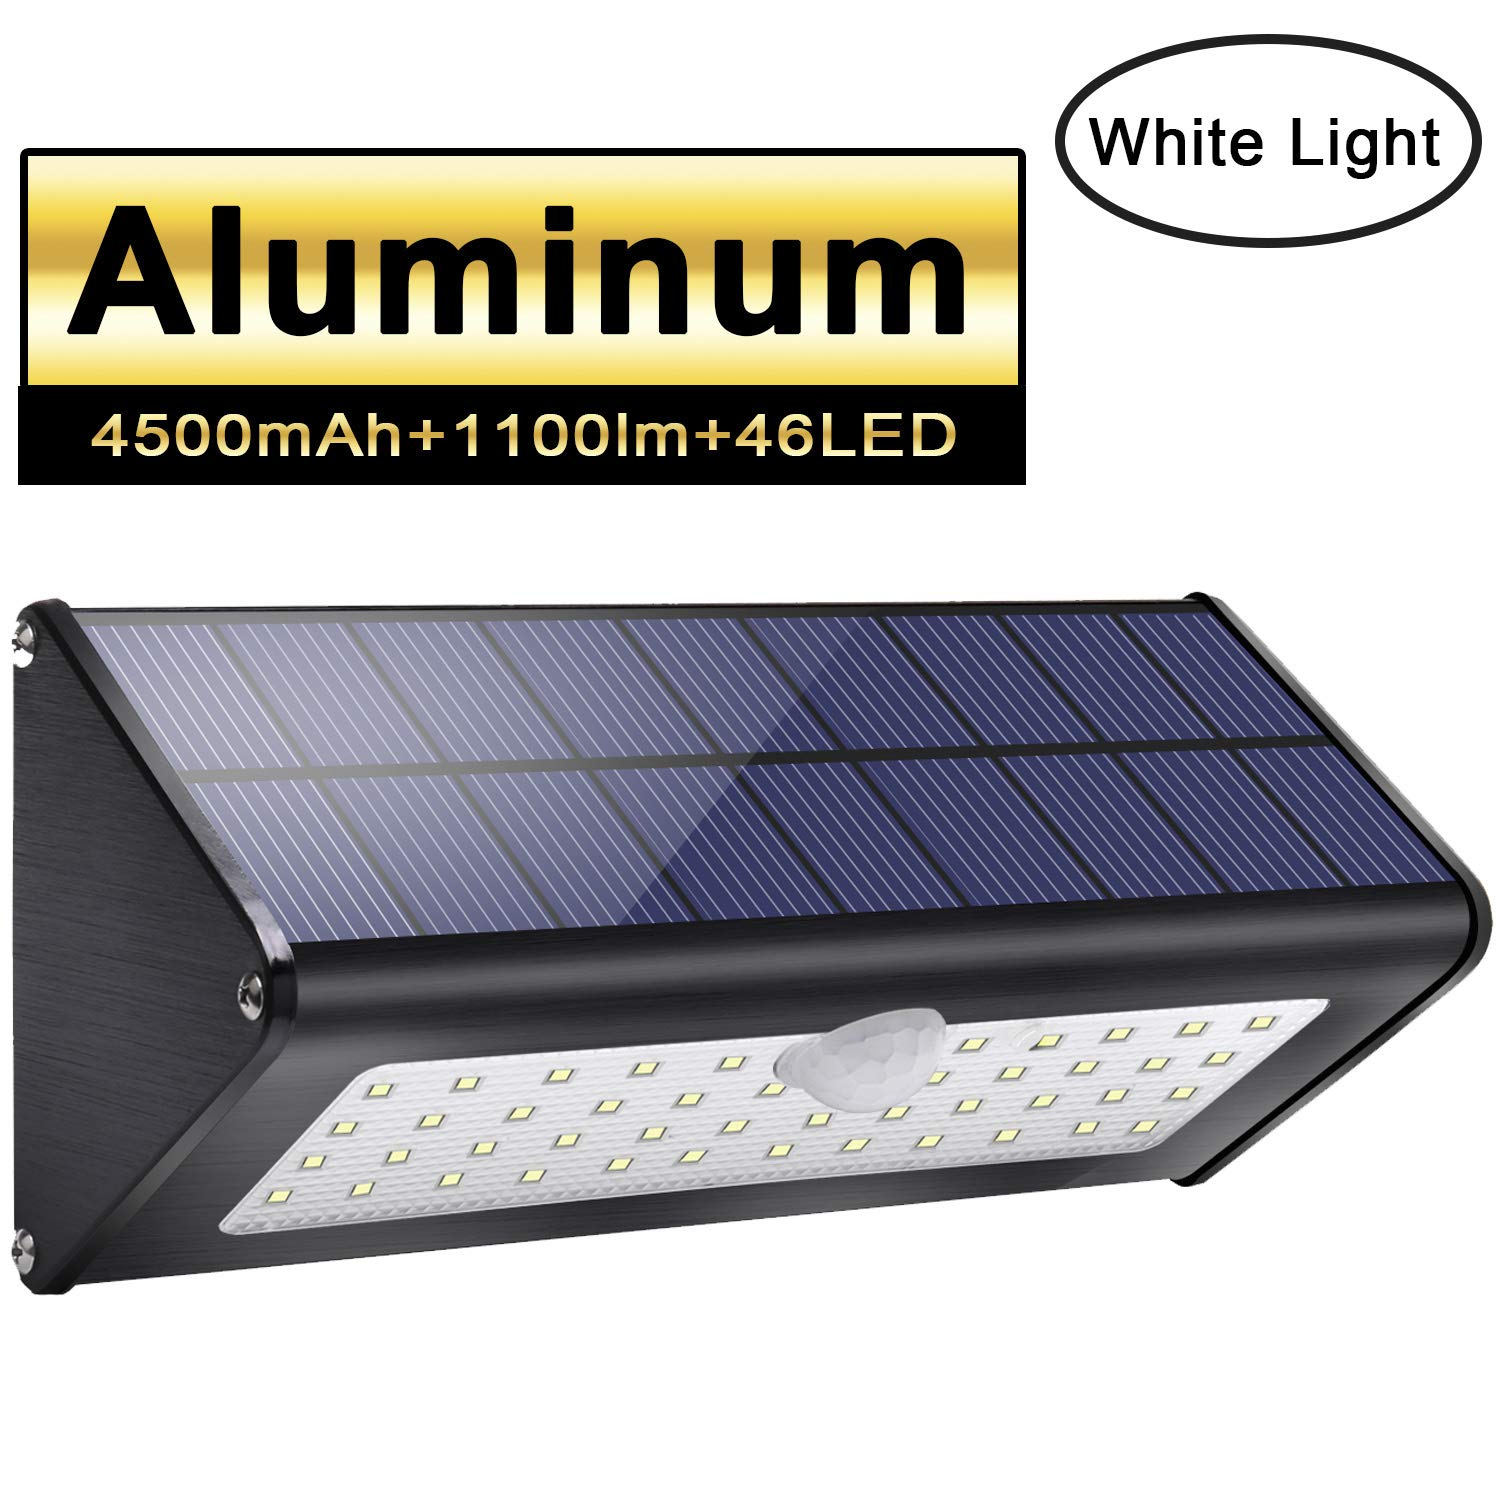 1100lm 4500mAh 46 LED Aluminum Black Solar Outdoor Light 120° Infrared Motion Sensor, Waterproof IP65 Wireless Security Light with 4 Intelligent Modes for Garden, Patio, Fence, Yard, Garage, Stairway, Gate, Wall- Warm White Light Licwshi